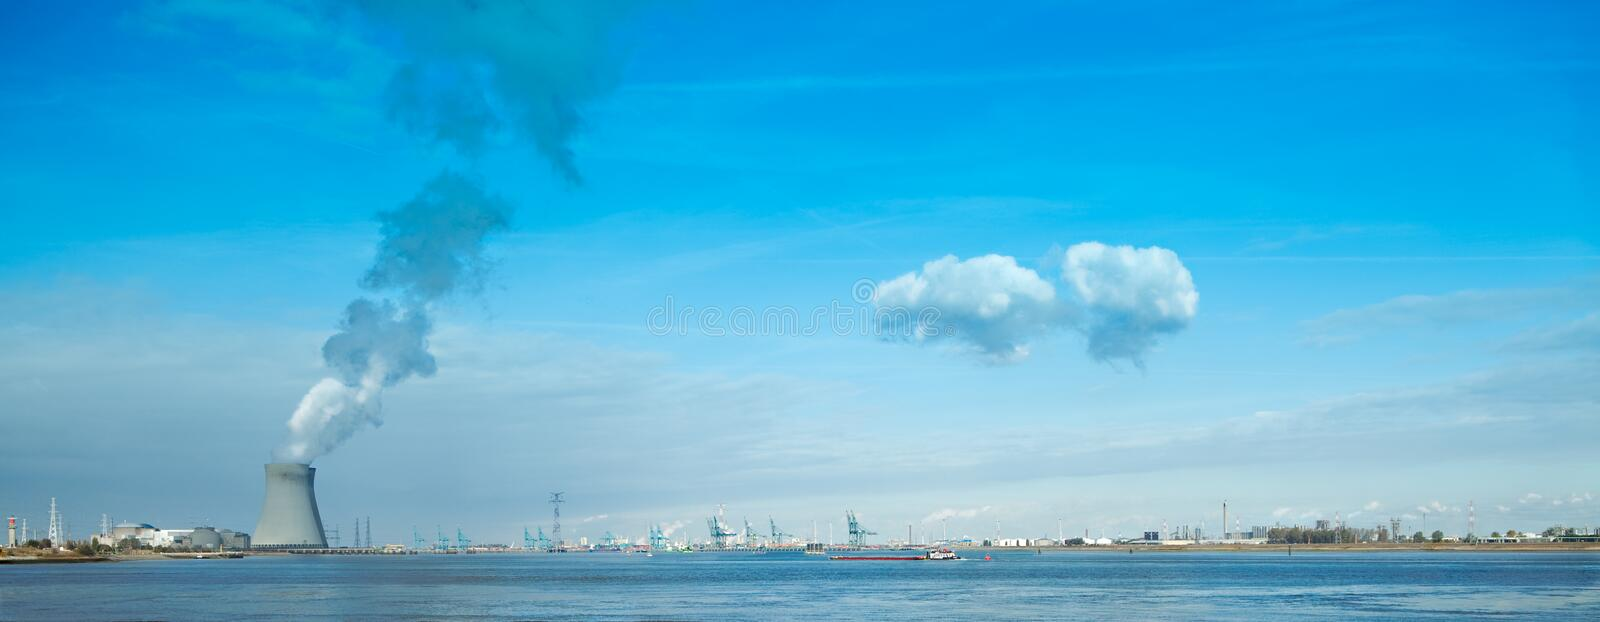 Download Nuclear Power Plant Blue Sky Clouds Harbor Stock Image - Image of generator, nuclear: 11473253